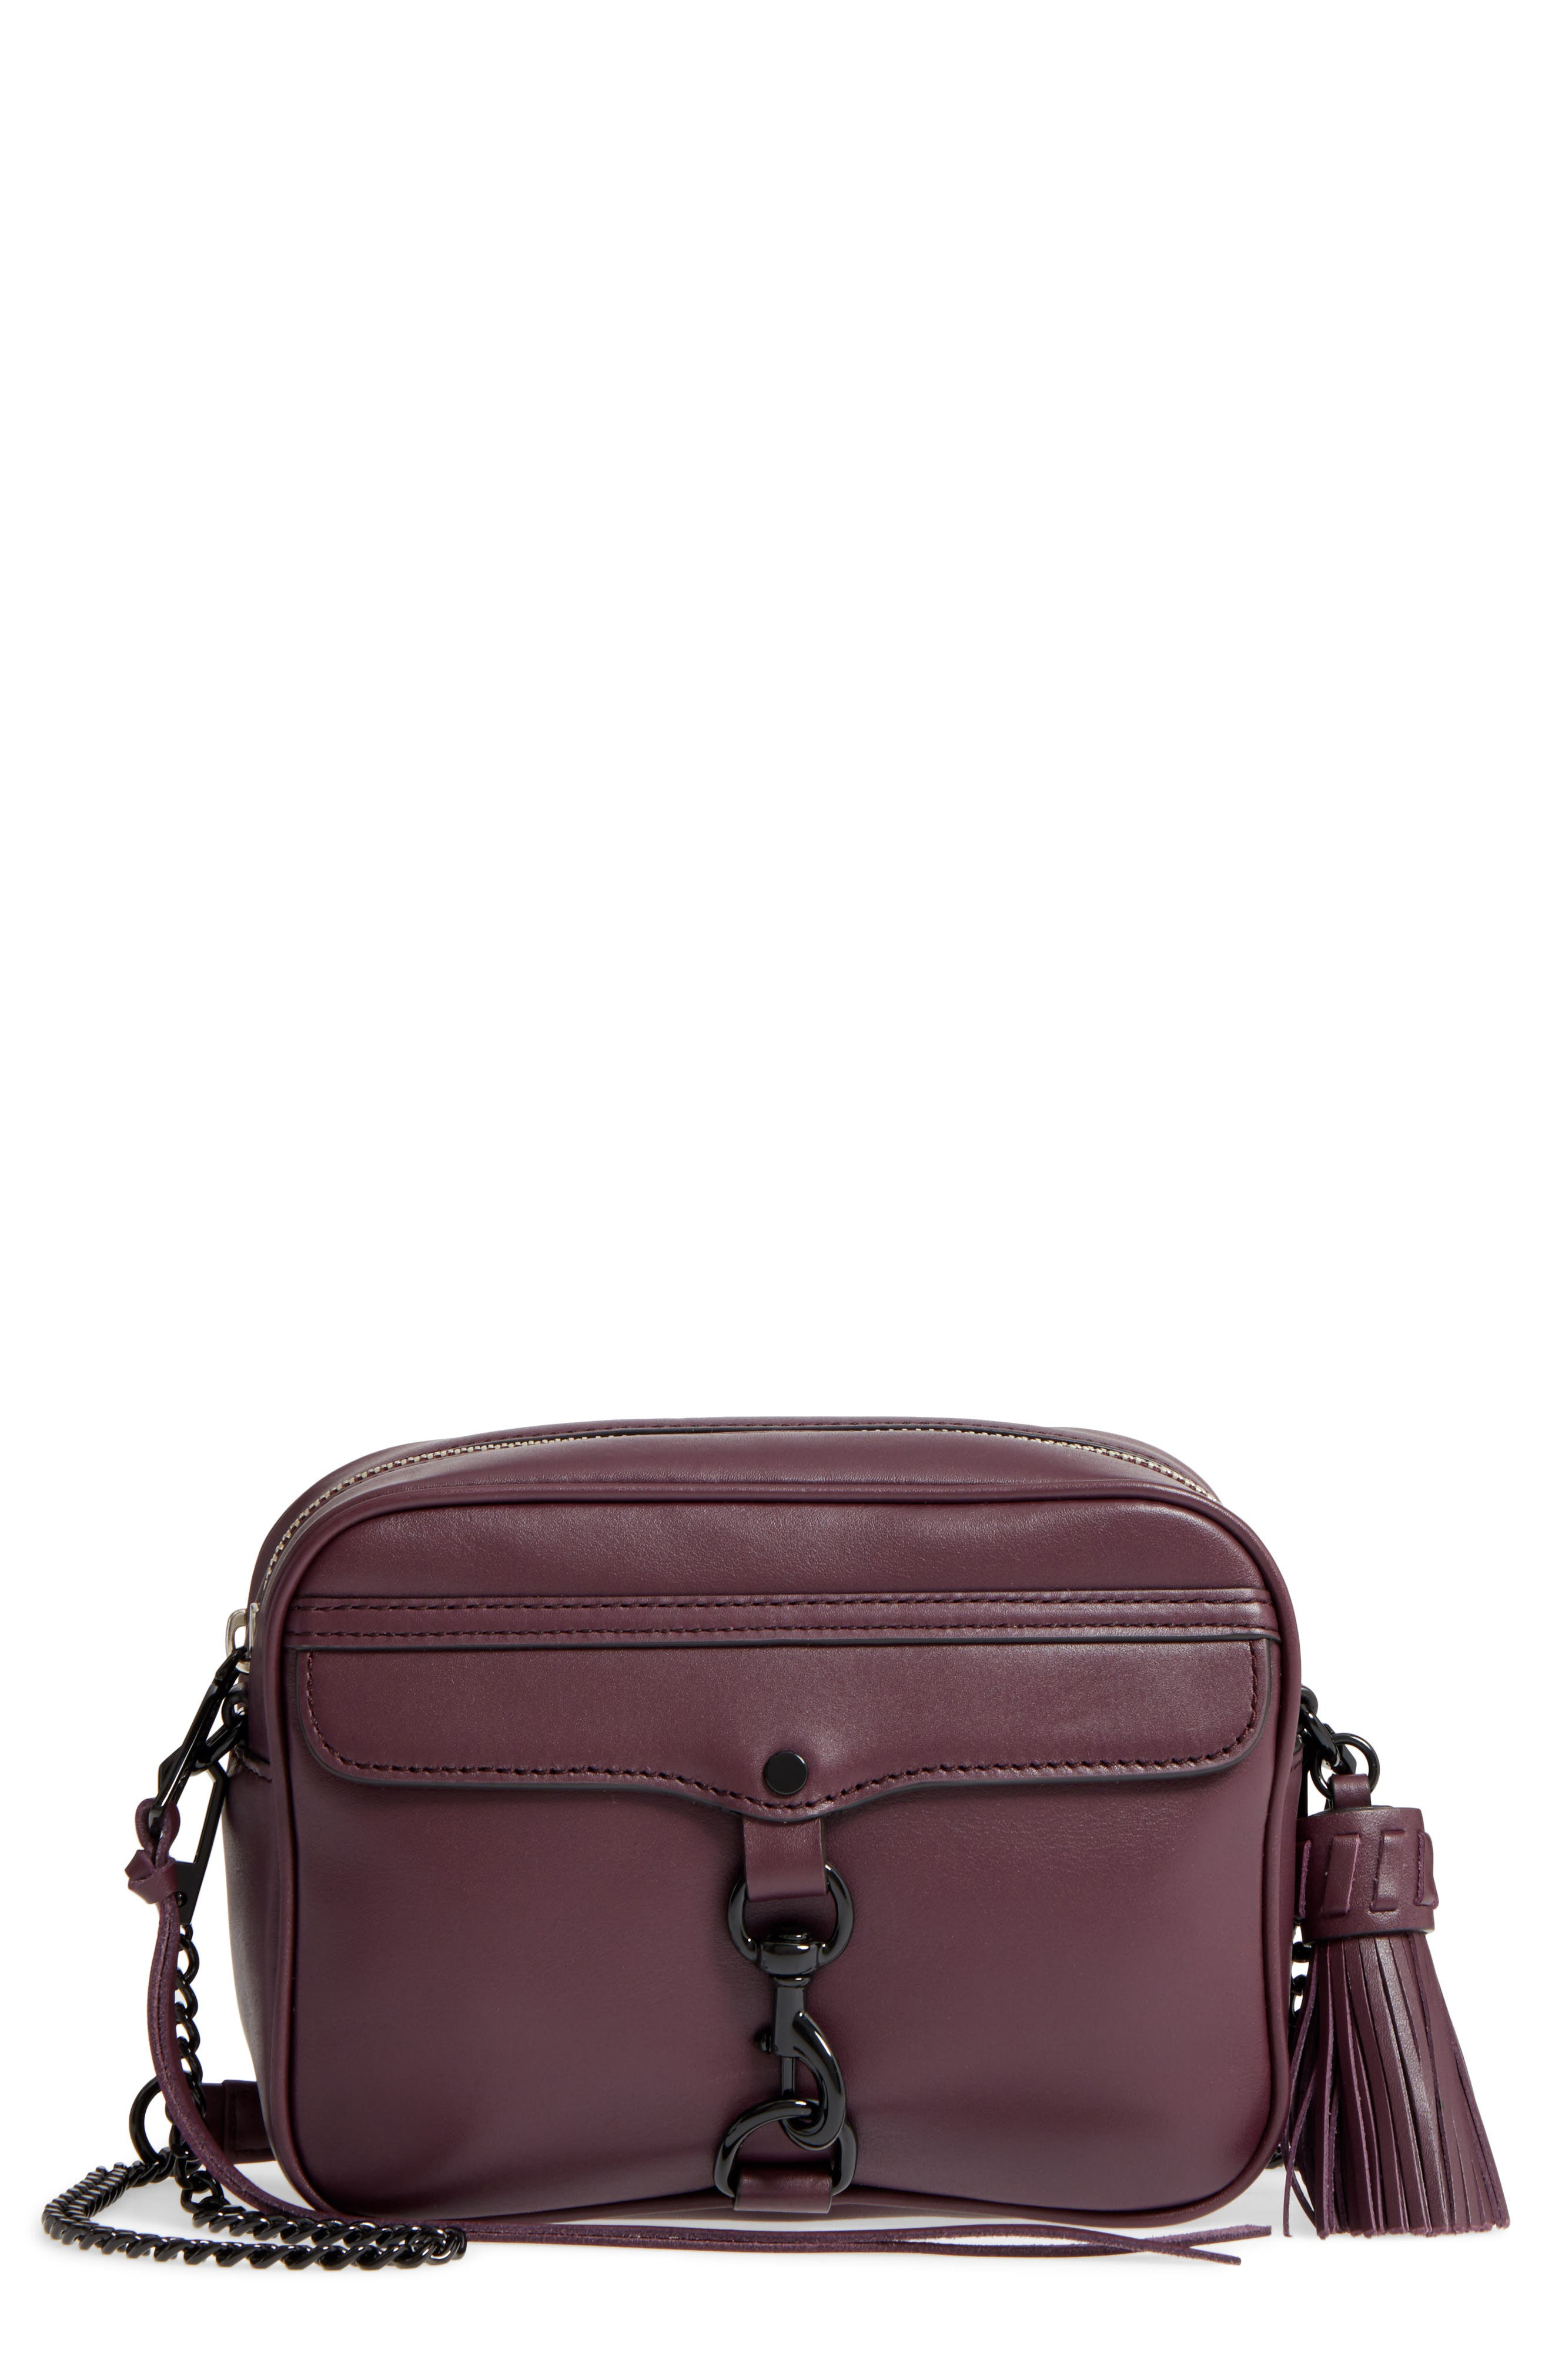 MAB Camera Bag,                         Main,                         color, 610